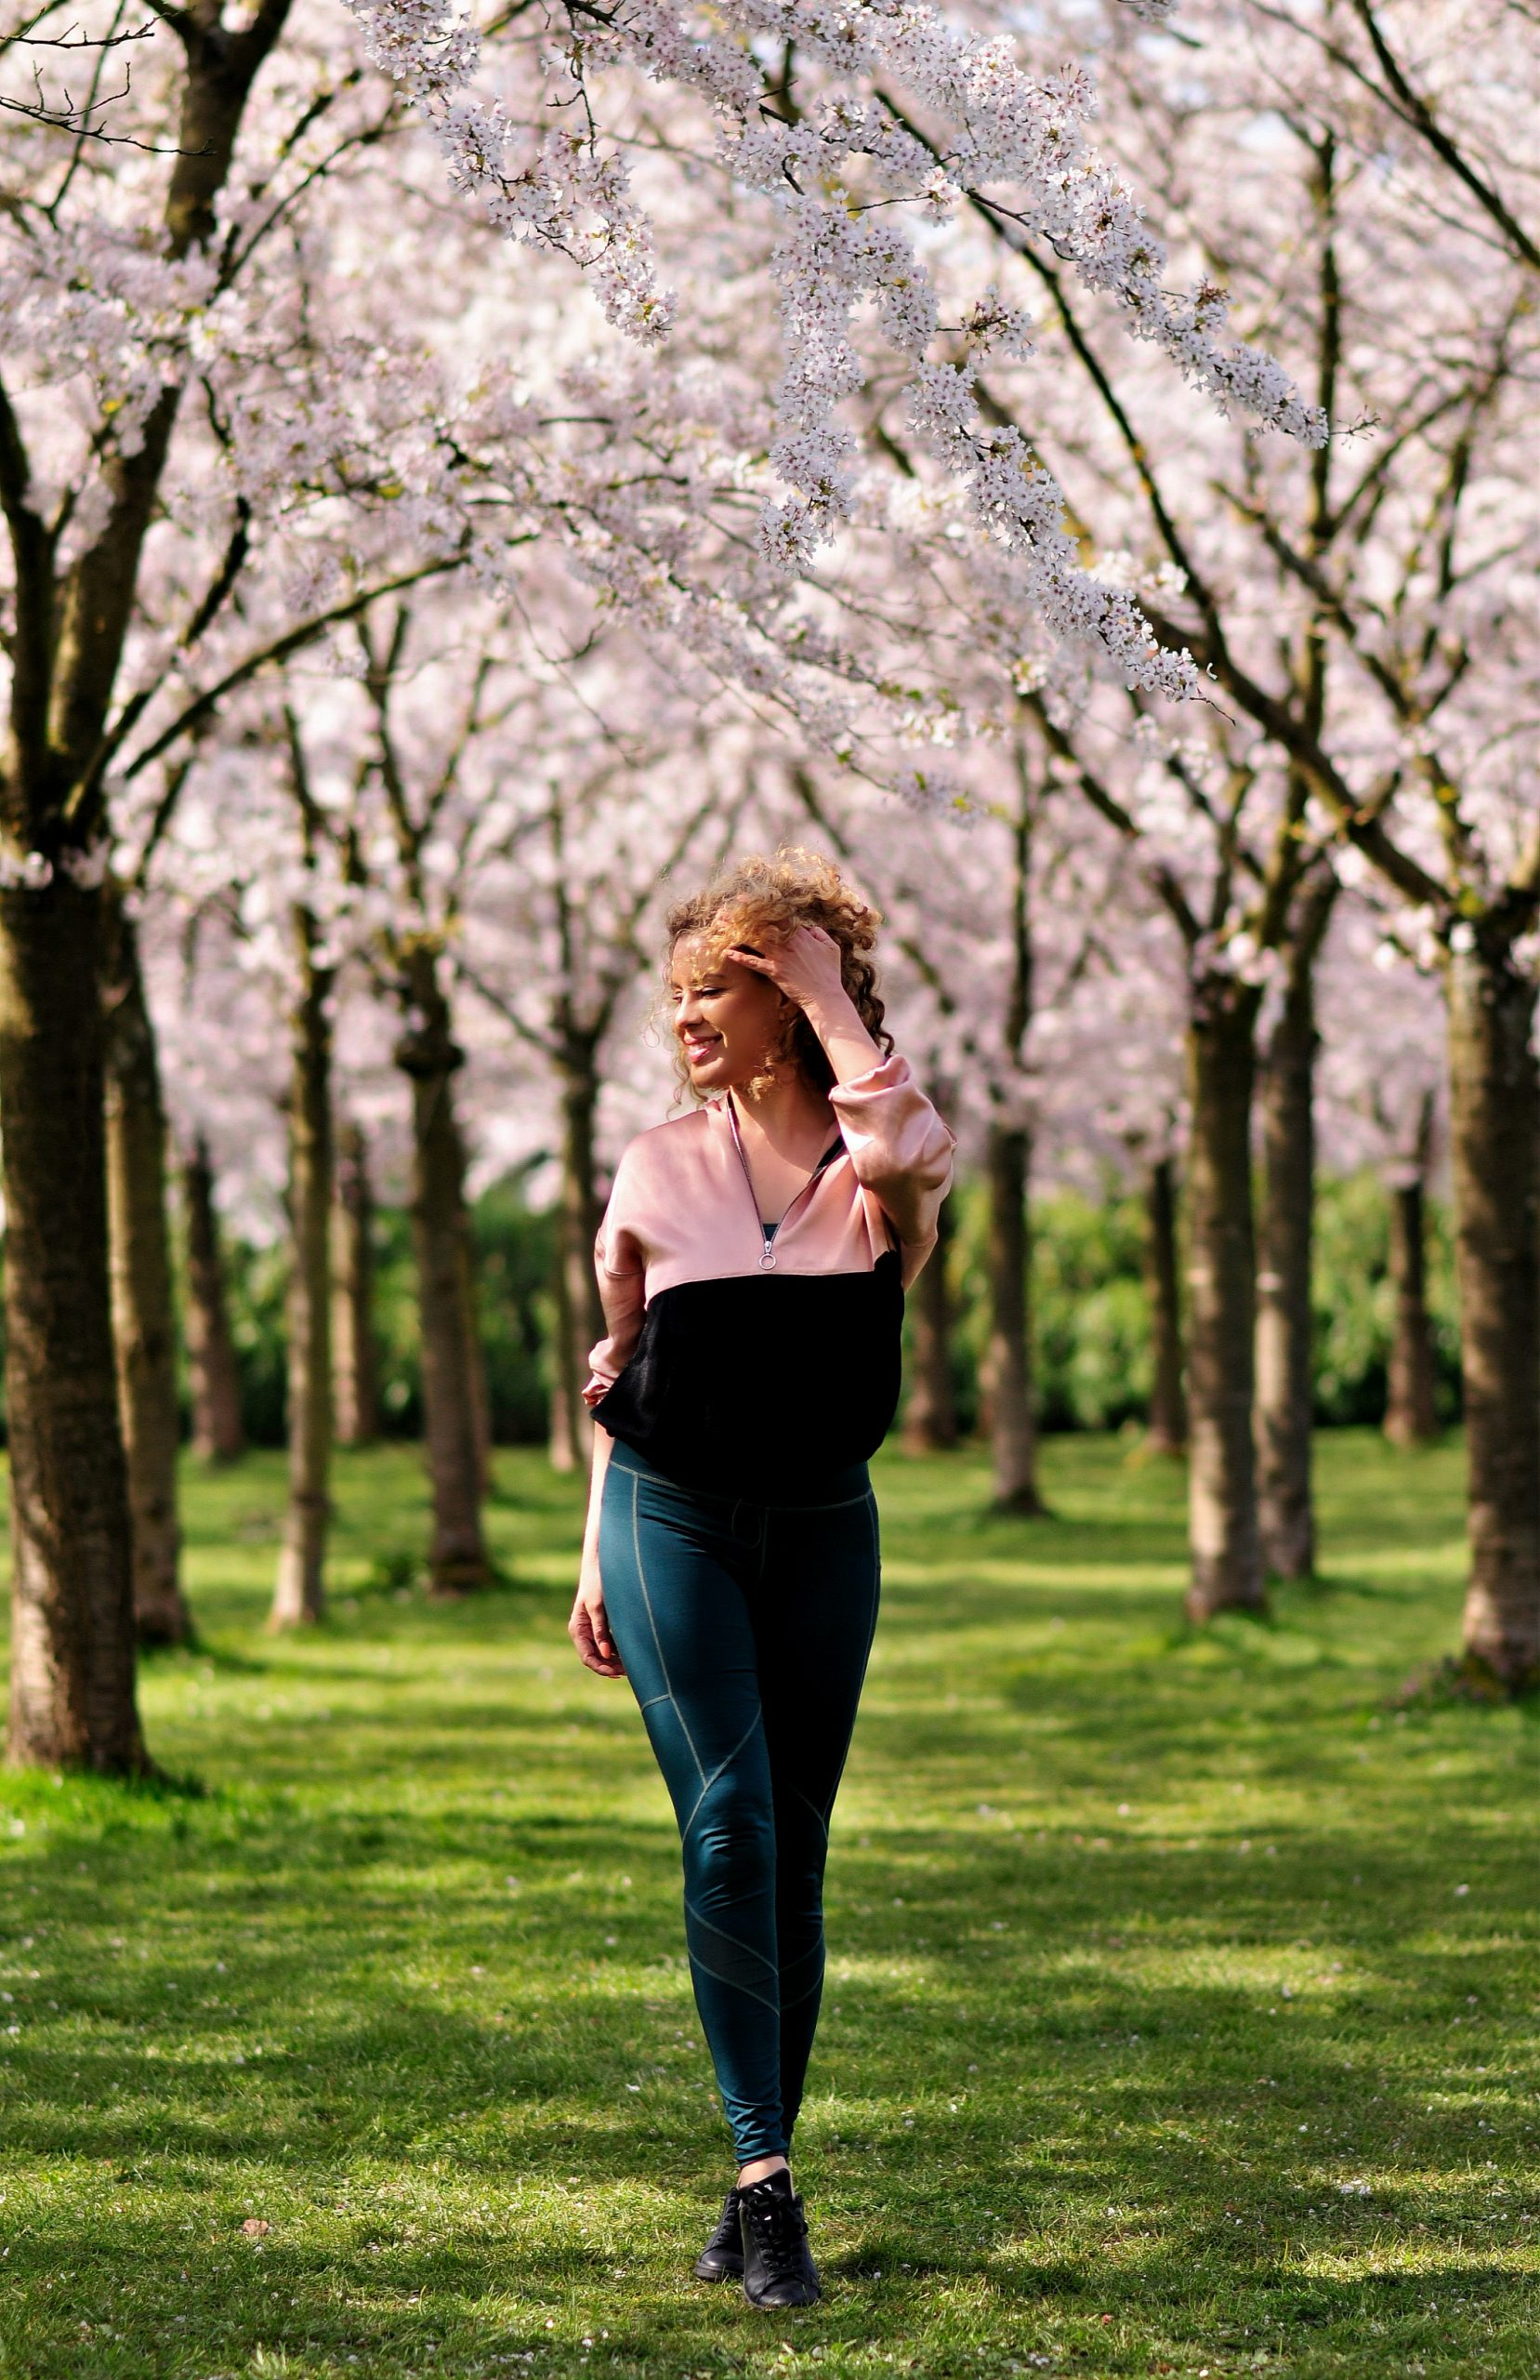 Social distancing, How to safely exercise outdoors, Covid-19, coronavirus, Tamara Chloé, Cherry blossoms, Amsterdam